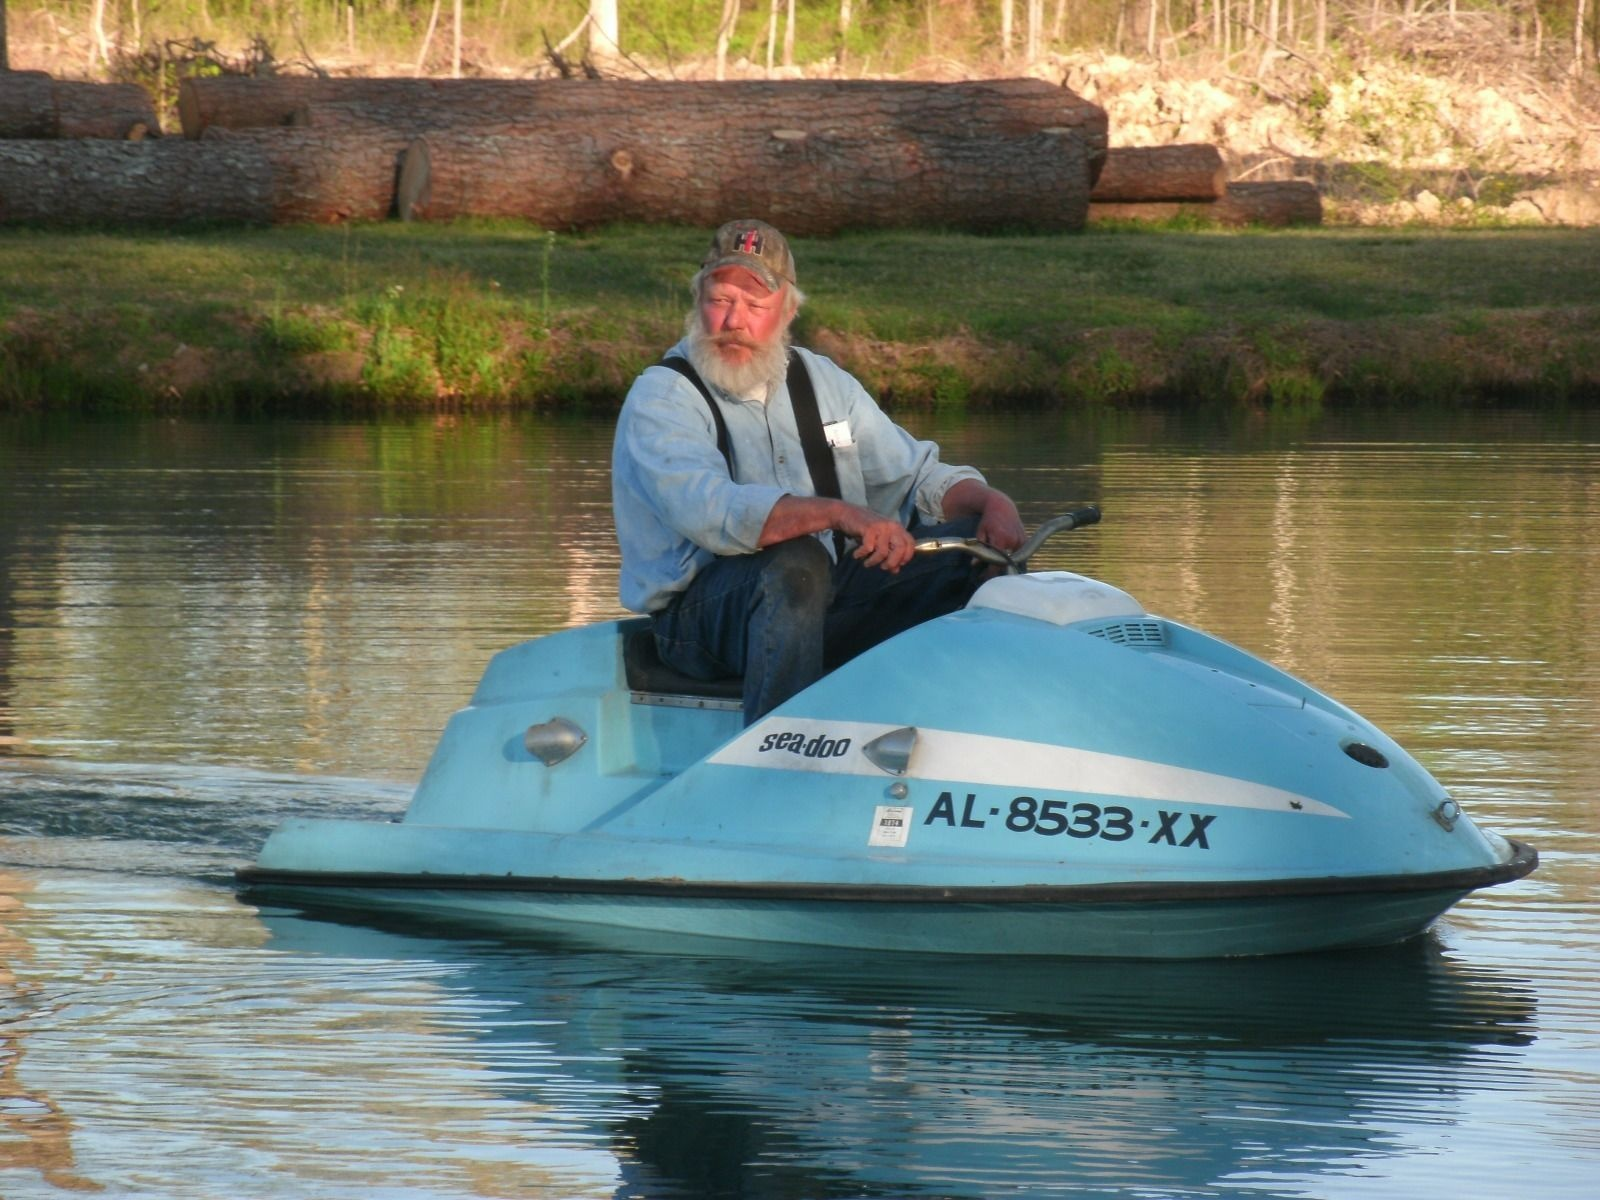 Sea Doo Bombardier >> True Blue Sea-Doo: 1970 Sea-Doo 372